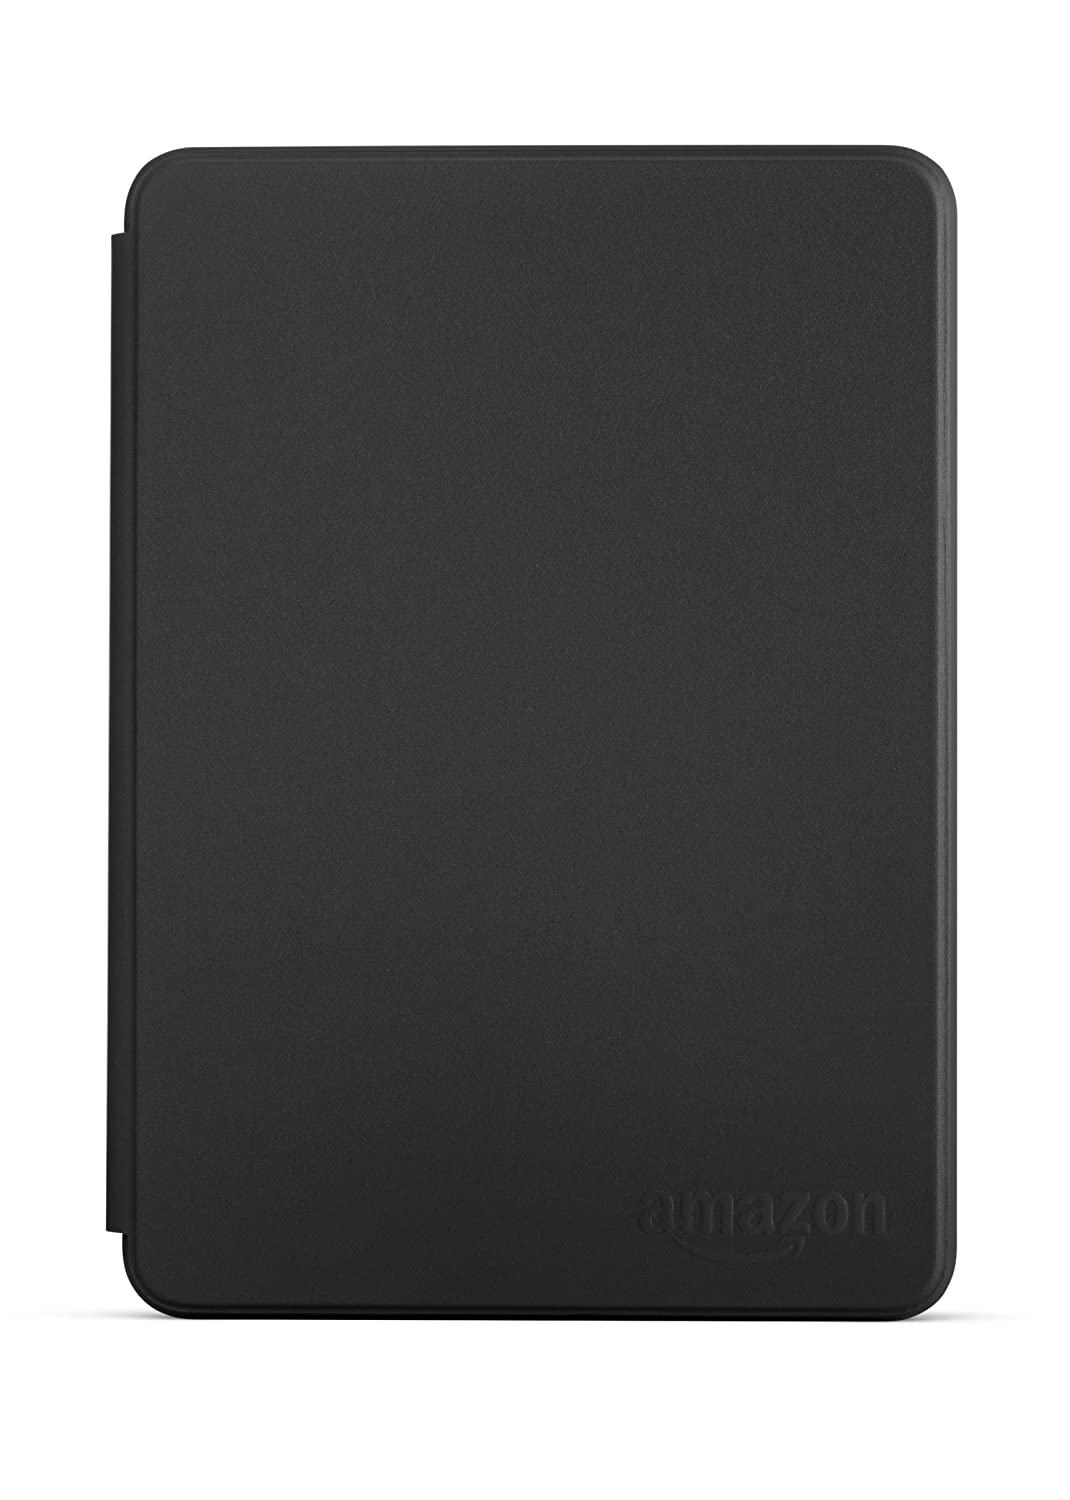 will not fit previous generation Kindle devices 7th Generation Citron Protective Cover for Kindle